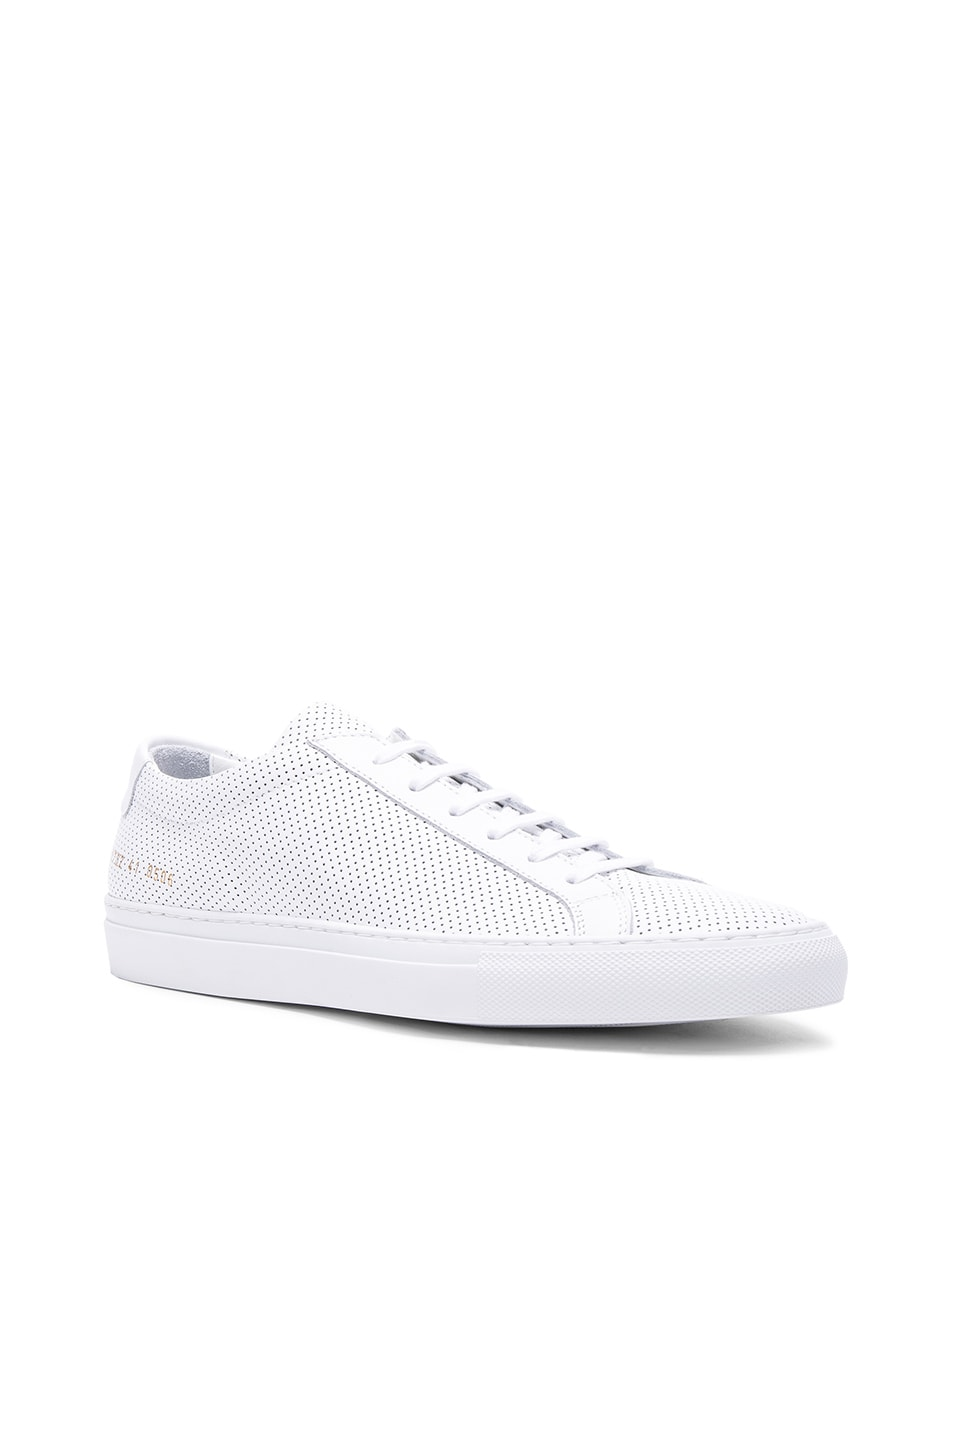 Image 1 of Common Projects Original Perforated Leather Achilles Low in White